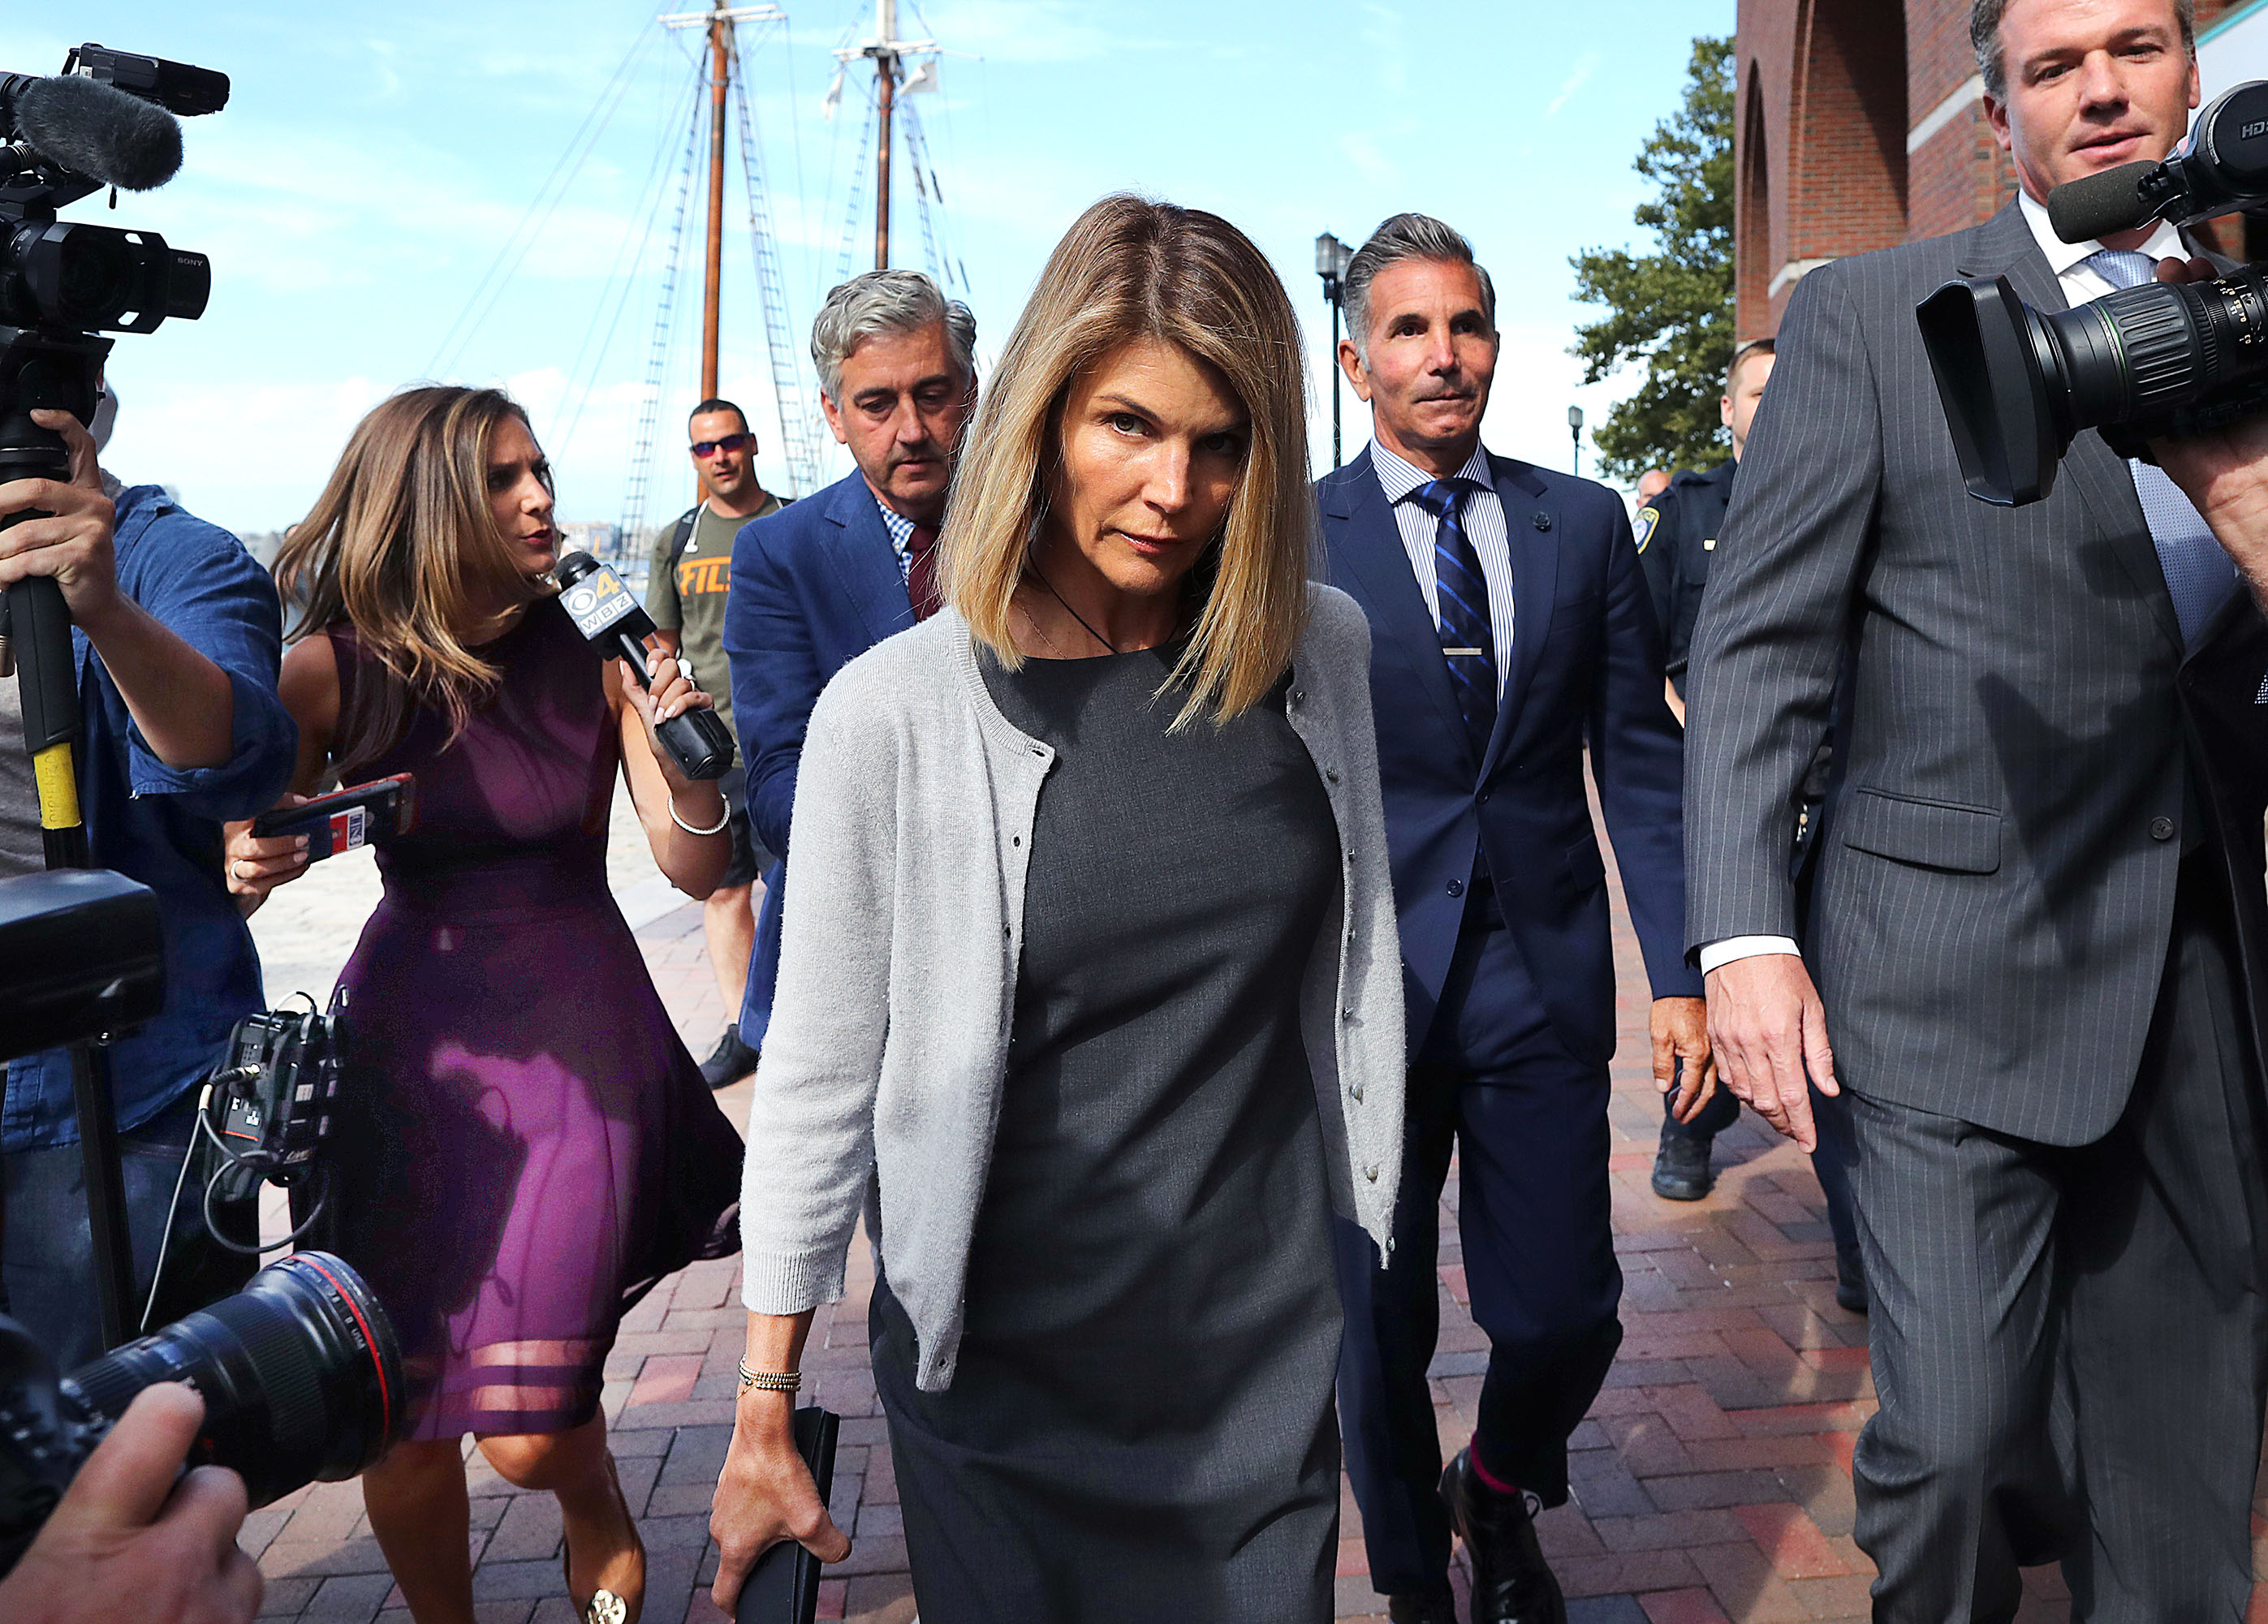 Scandals 2020: Lori Loughlin and Mossimo Giannulli